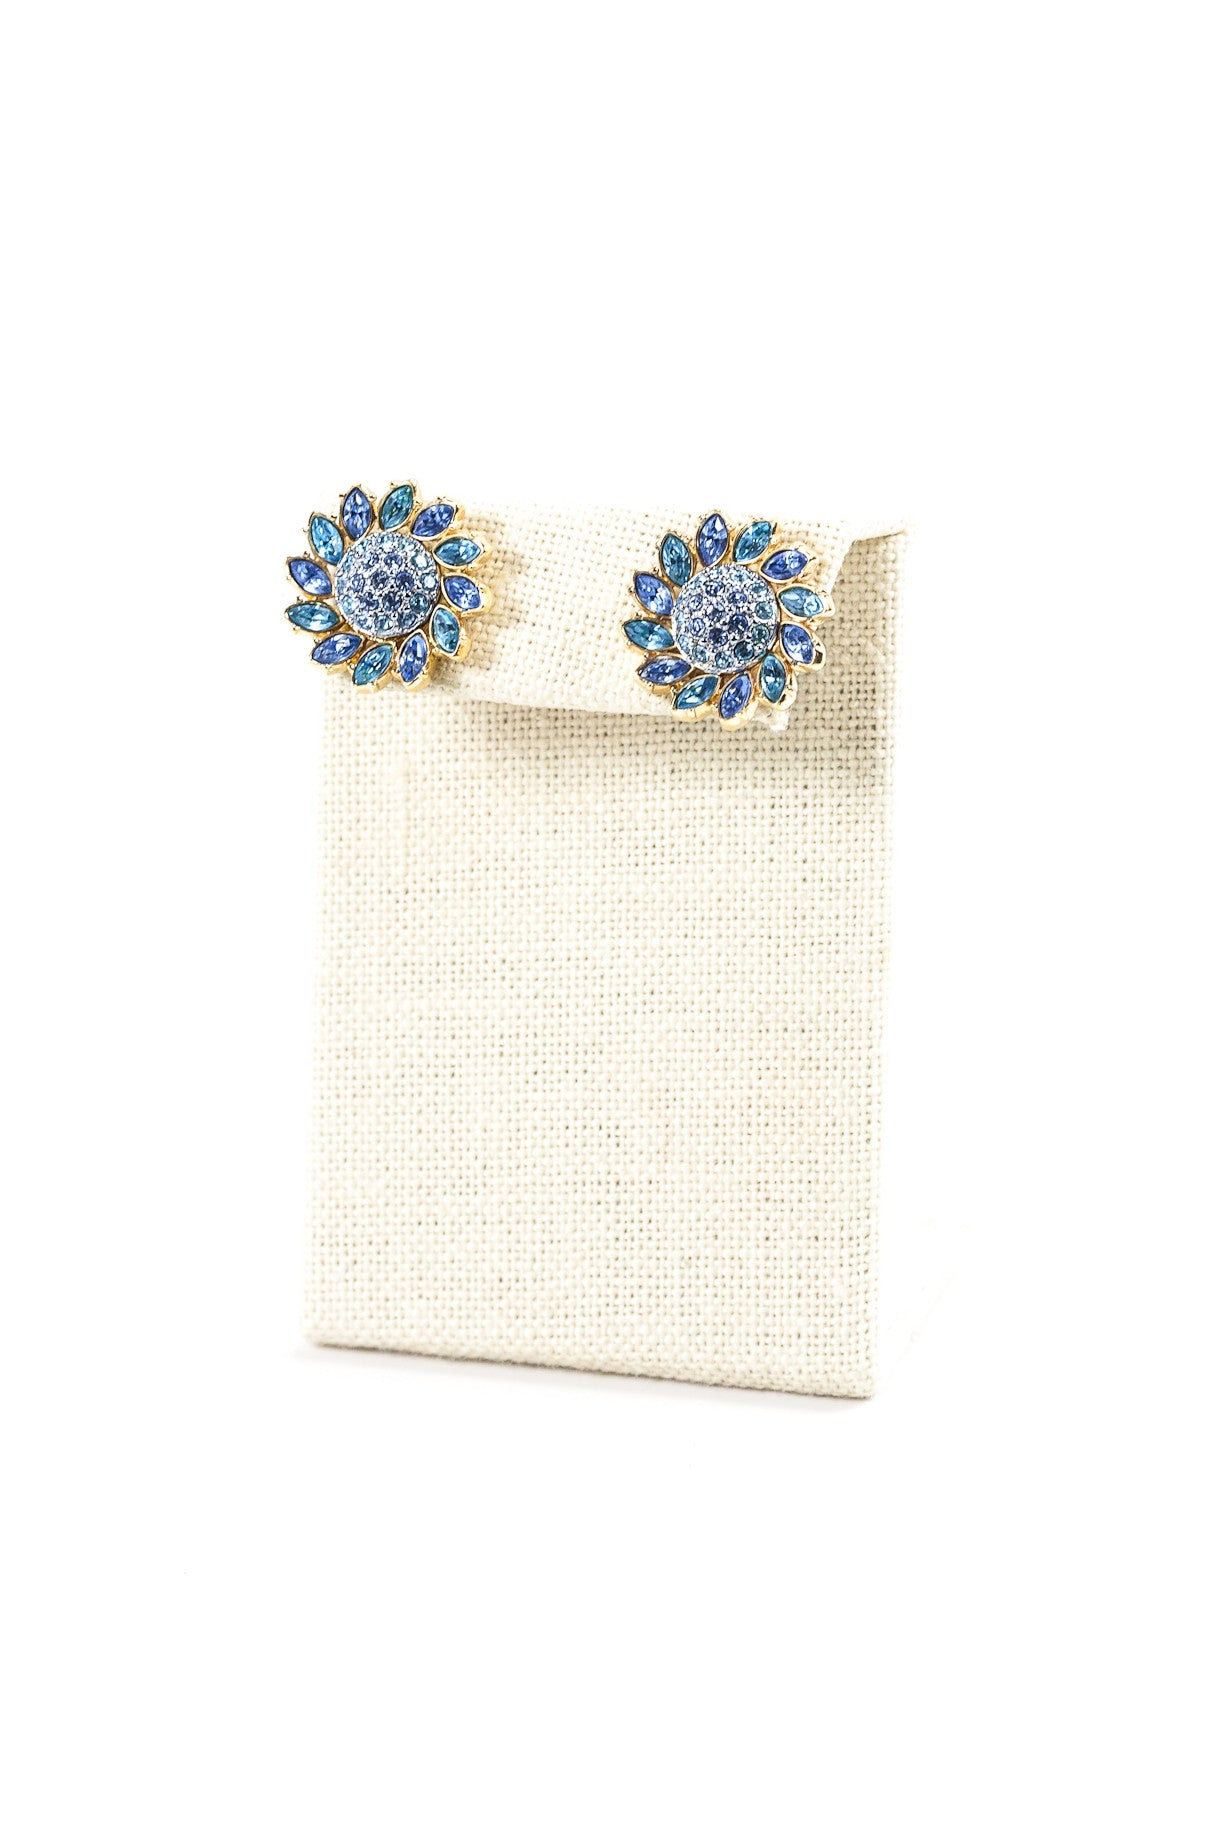 Vintage Blue Rhinestone Sunflower Earrings